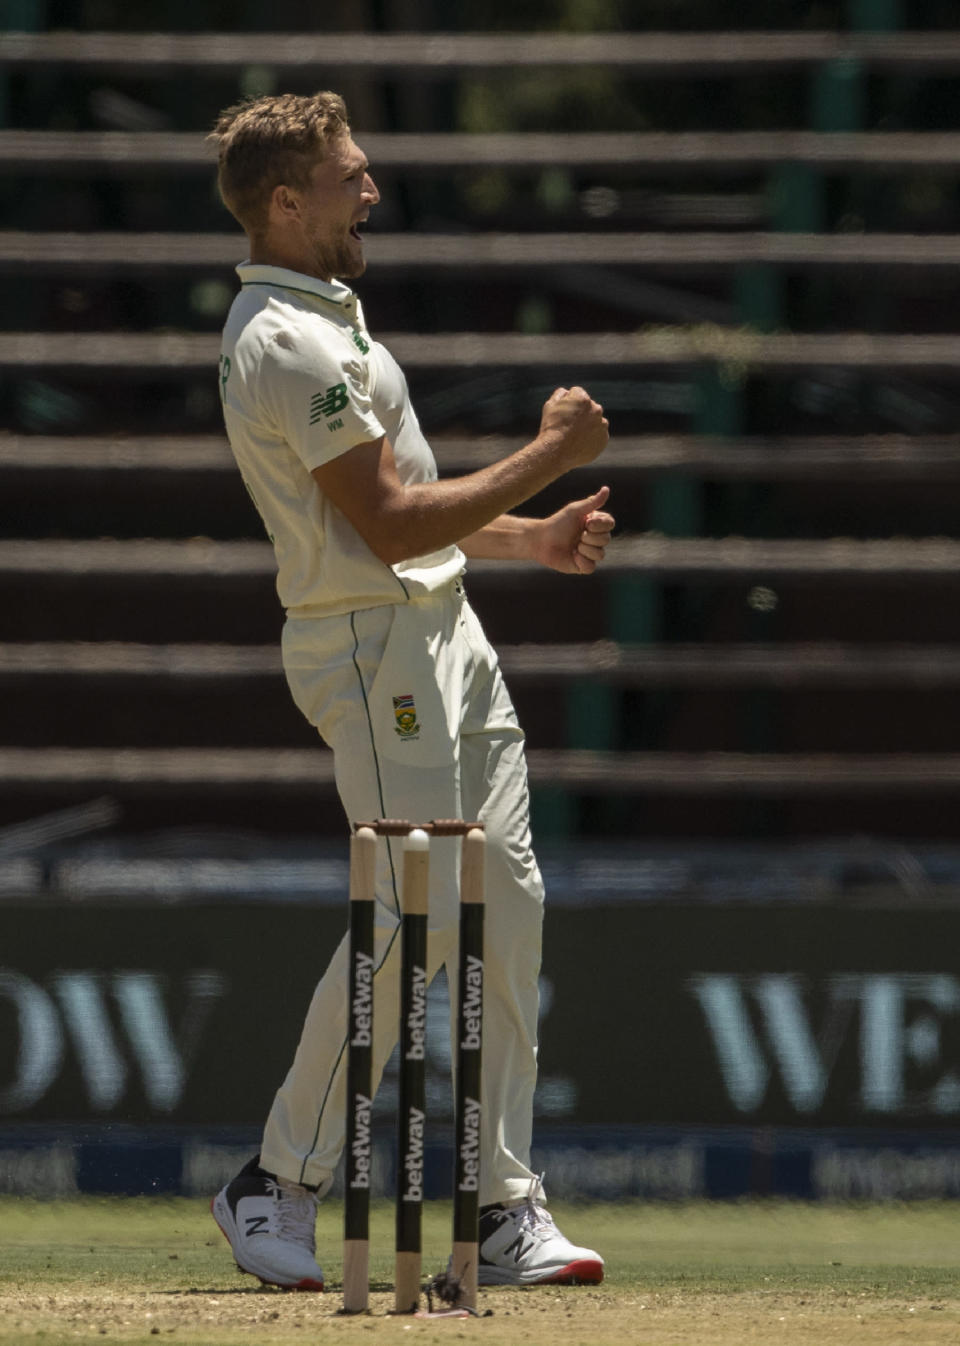 South Africa's bowler Wiaan Mulder celebrates after dismissing Sri Lanka's batsman Kusal Perera for 60 runs during the 2nd Test cricket match between South Africa and Sri Lanka Wanderers stadium in Johannesburg, South Africa, Sunday, Jan. 3, 2021. (AP Photo/Themba Hadebe)